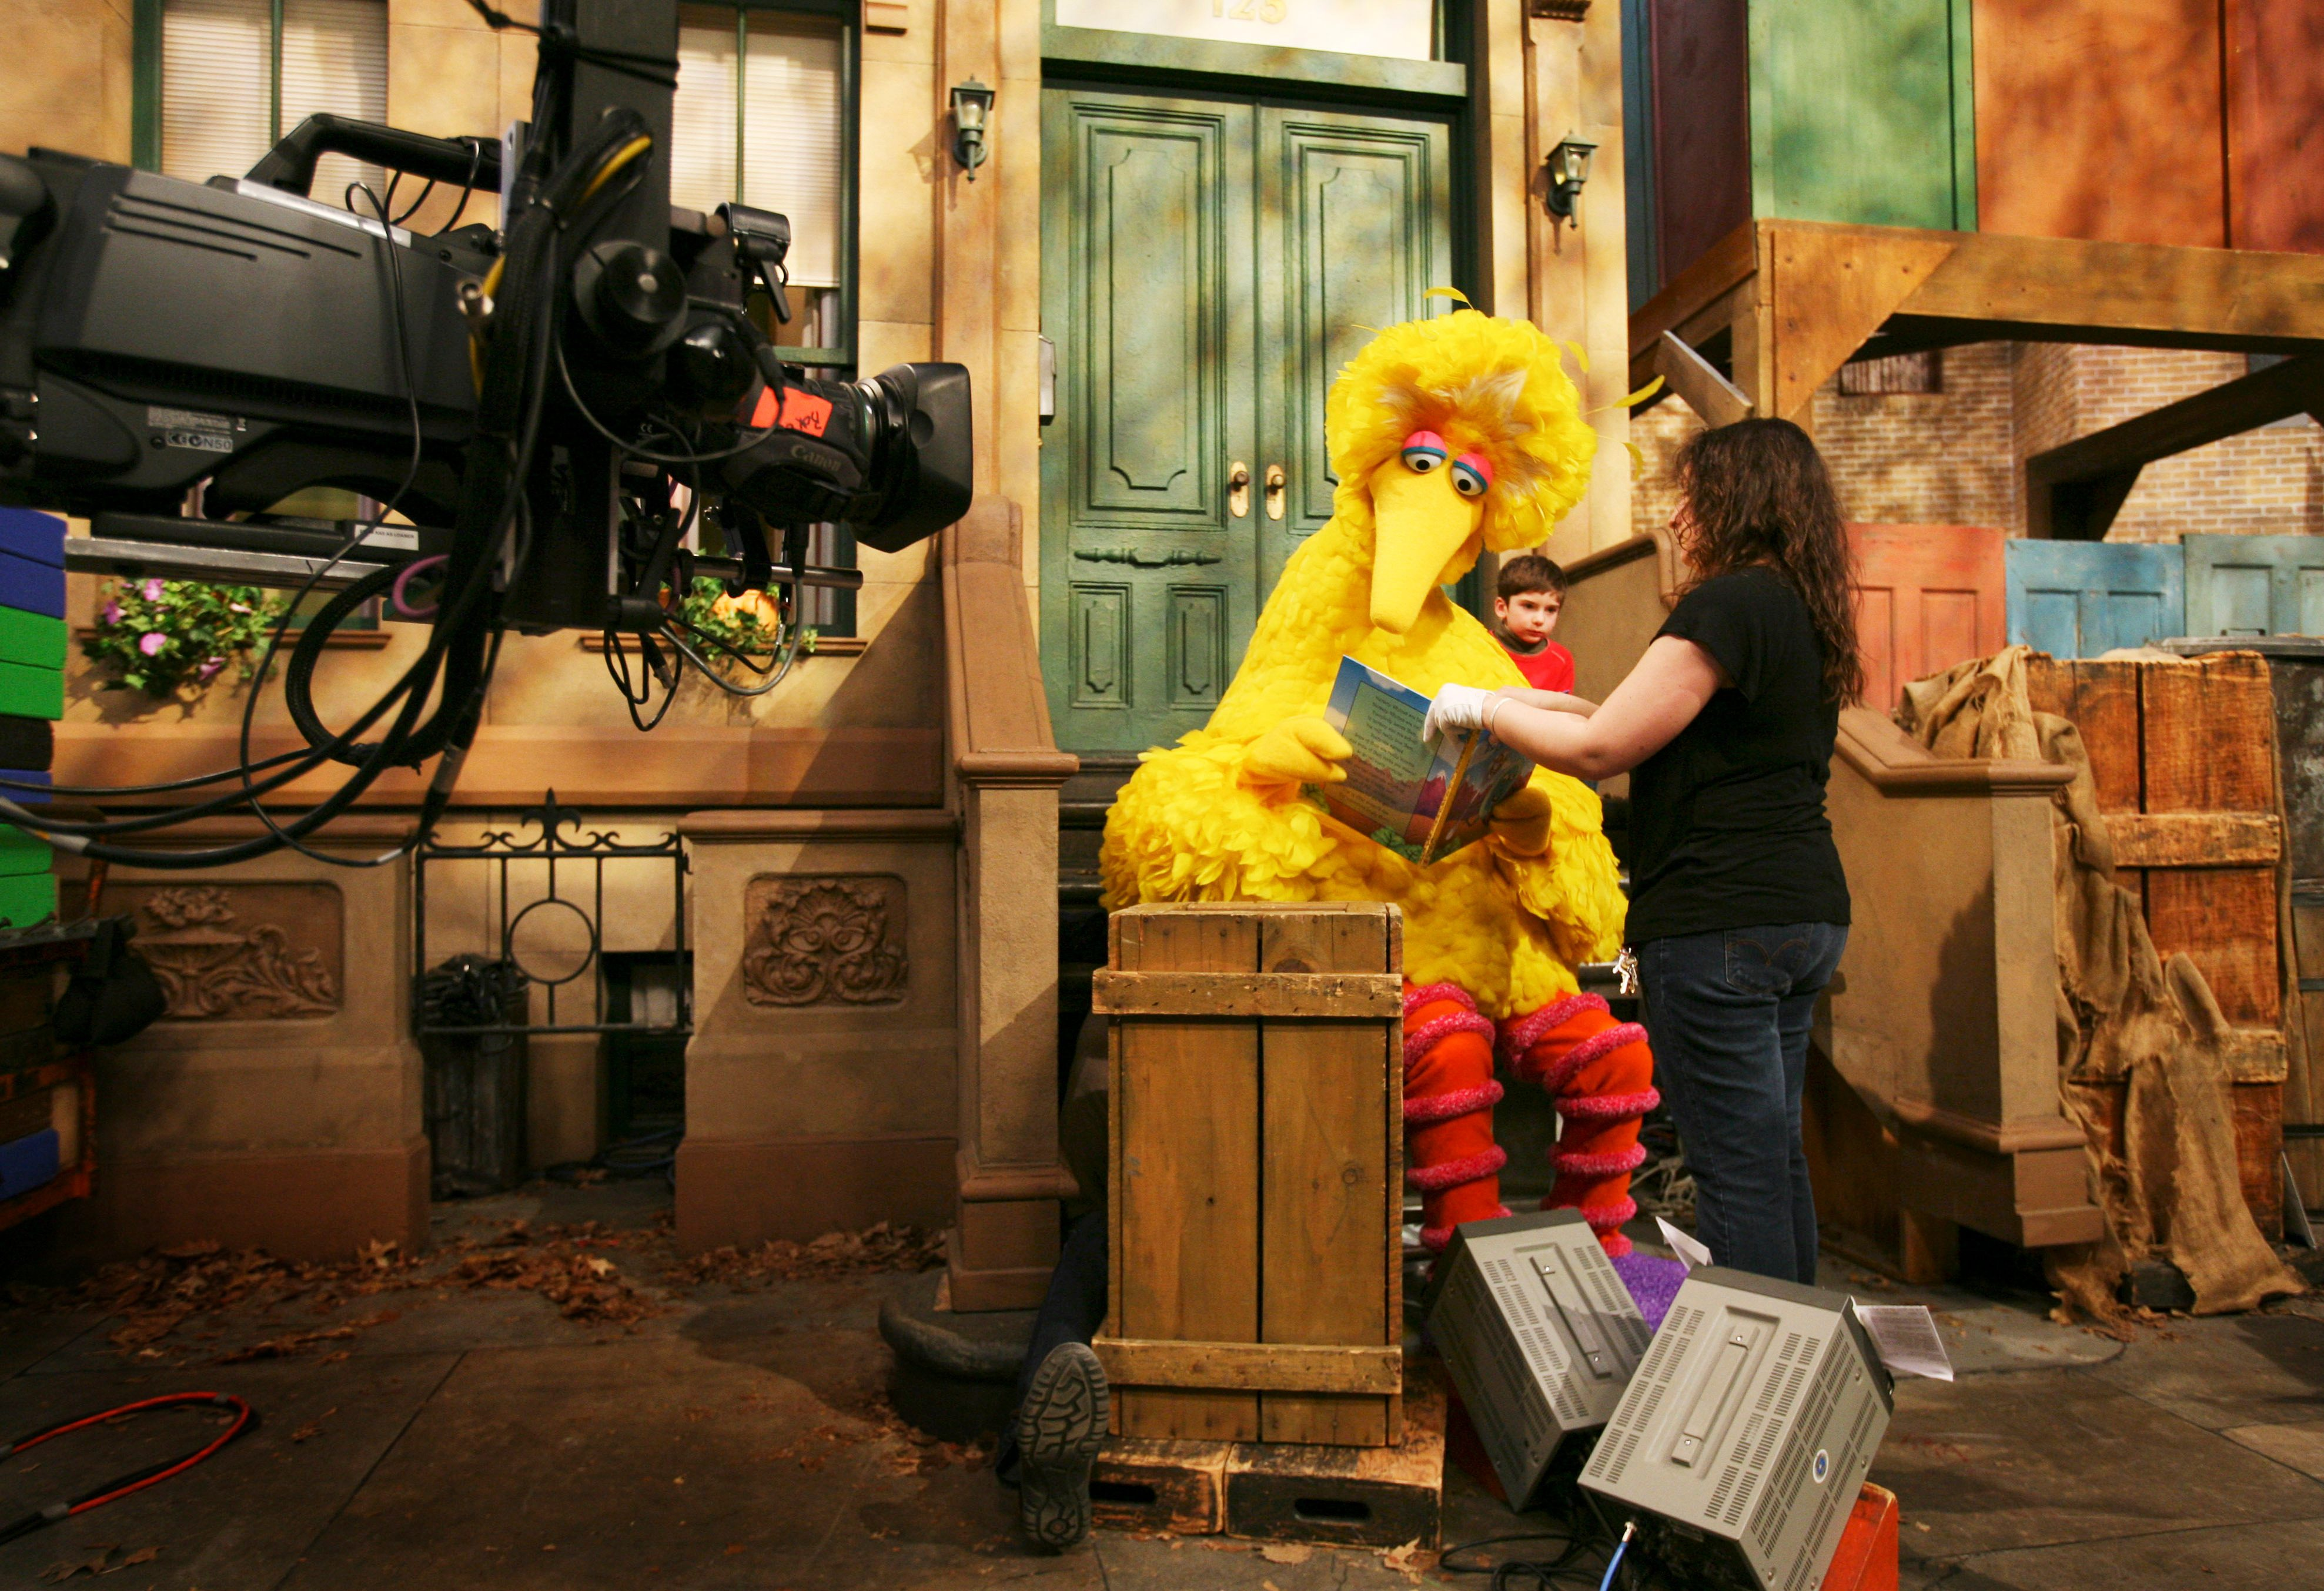 """Mandatory Credit: Photo by Mark Lennihan/AP/Shutterstock (6359732b) Caroll Spinney, Big Bird Michelle Hickey, a Muppet wrangler adjusts a book for Big Bird, voiced by Carroll Spinney, so he can read to Connor Scott during a taping of Sesame Street in New York. Spinney drops his fine-feathered obscurity (and emerges from his garbage-can fortress as Oscar the Grouch) for an enchanting film portrait, """"I Am Big Bird: The Caroll Spinney Story,"""" which celebrates the """"Sesame Street"""" puppet master who, at age 81, continues to breathe life into a pair of the world's best-loved personalities Film I Am Big Bird-Spinney, New York, USA"""